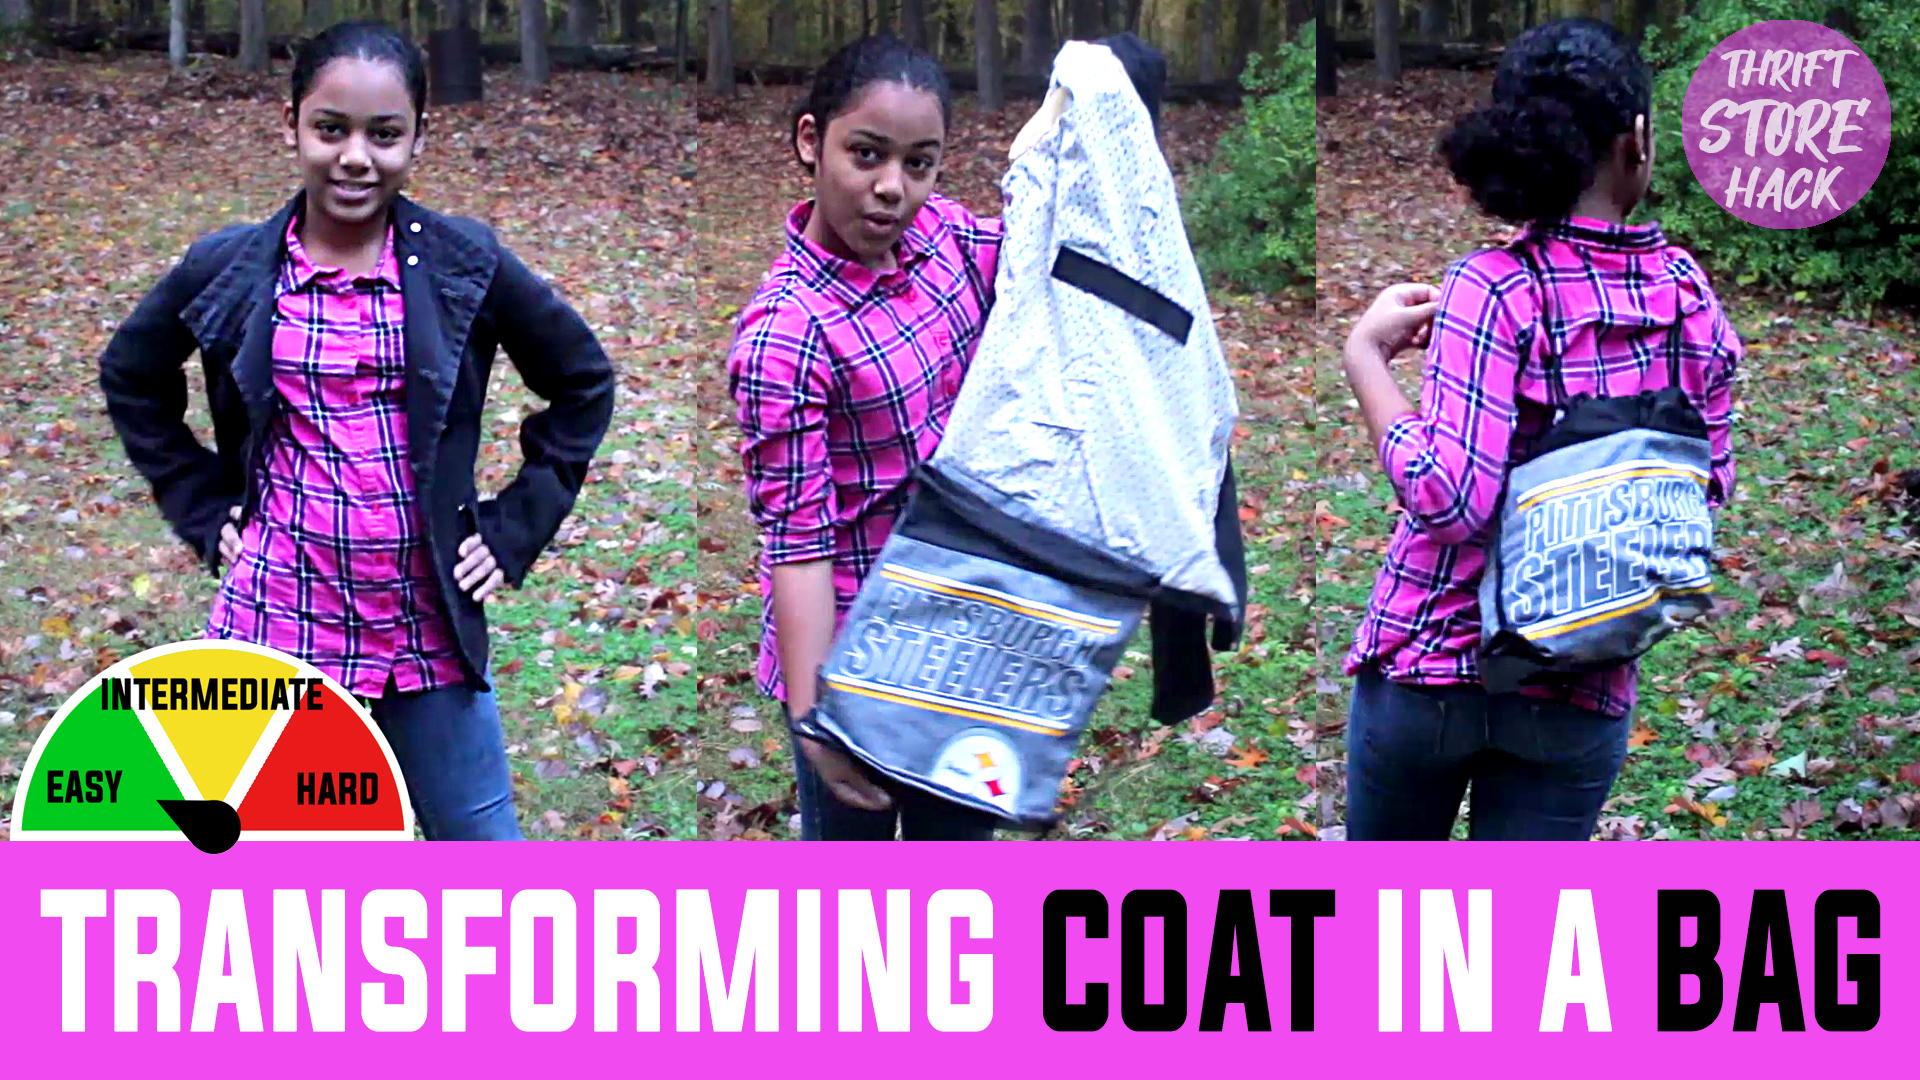 THRIFT SEWING HACK: Coat In A Bag? Bag In A Coat?